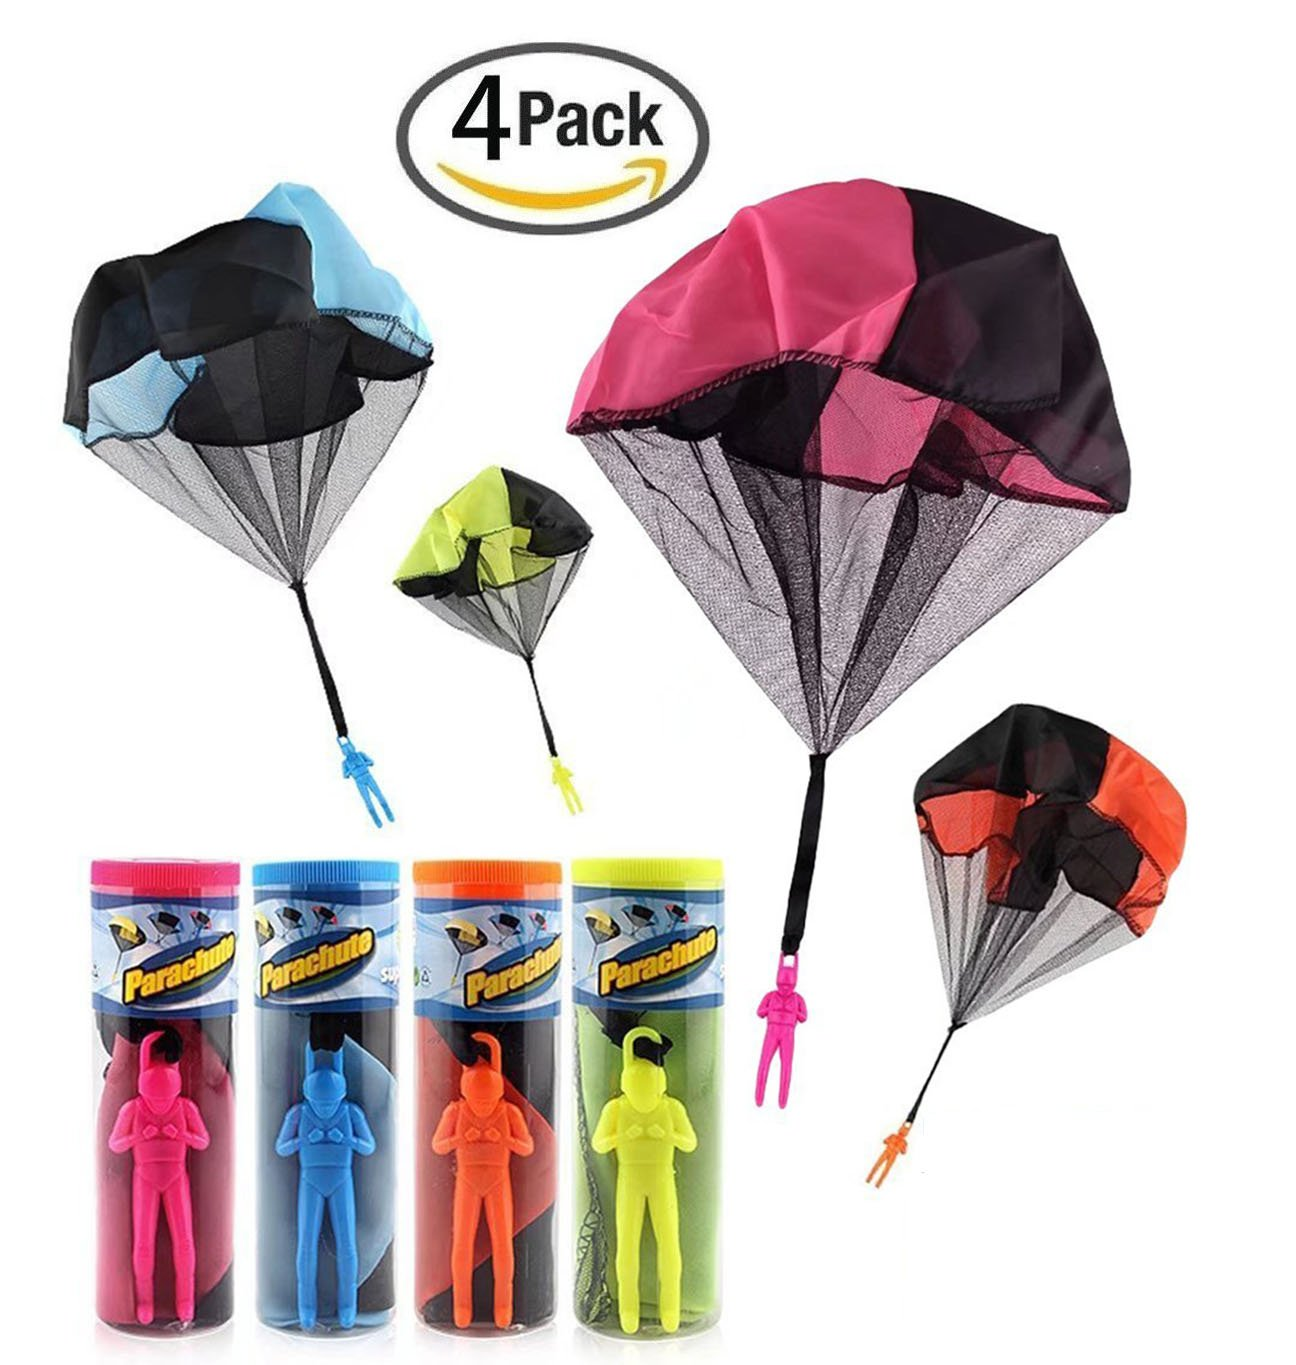 Mcgreen 4PCS Mini Parachute Toy Tangle Free Throwing Soldier Parachute Toy Men Outdoor Play Game Toy